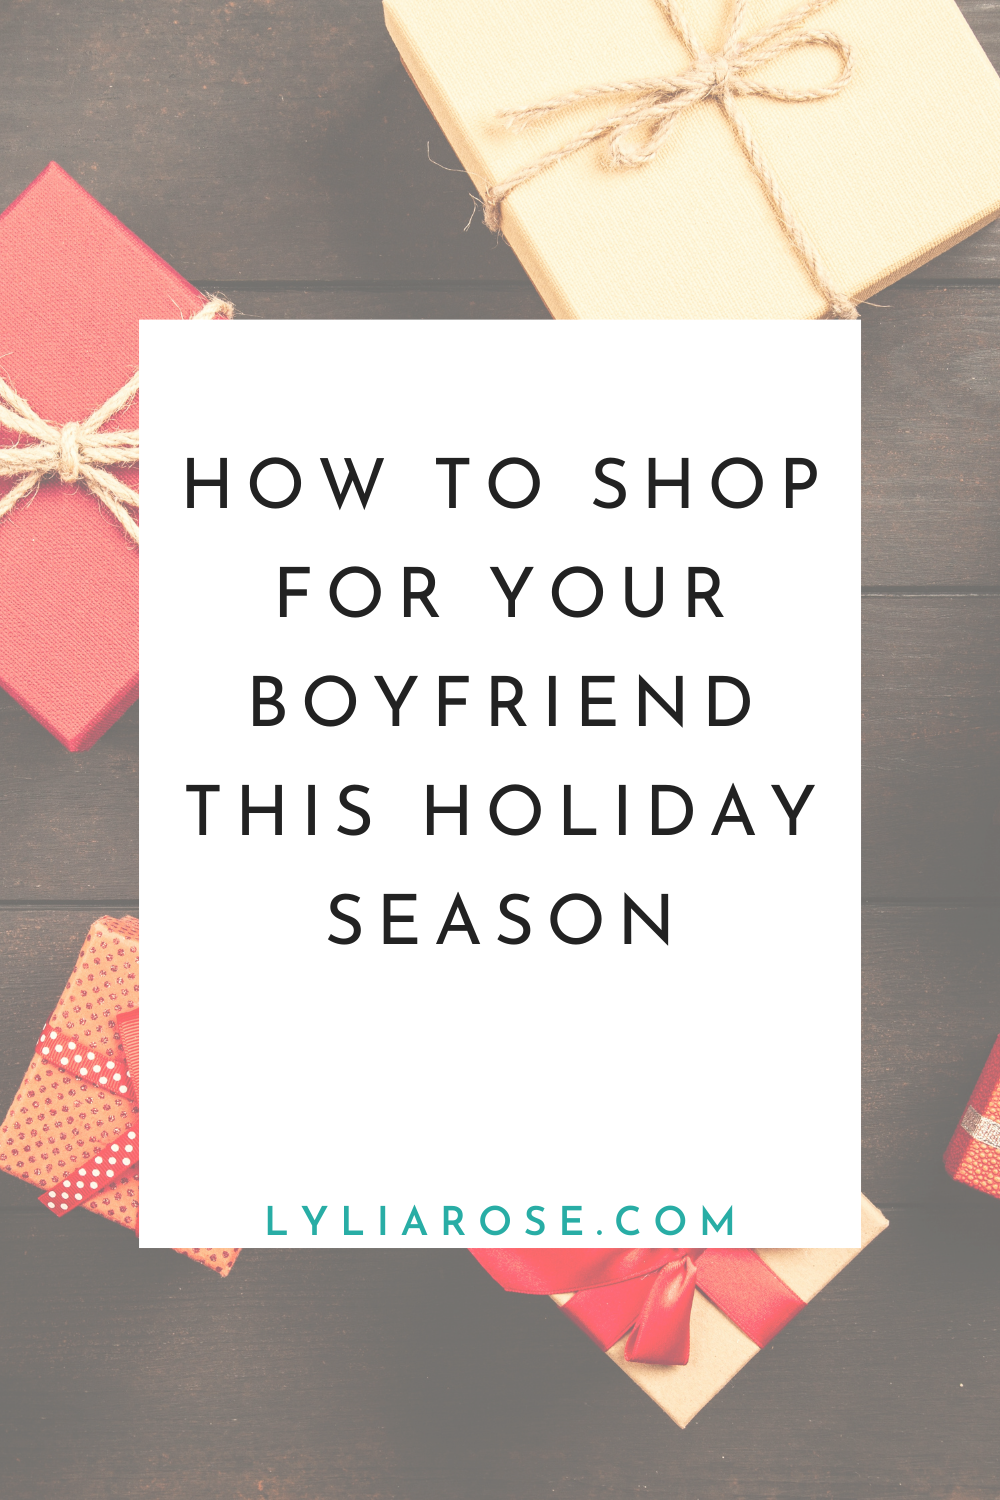 How to shop for your boyfriend this holiday season